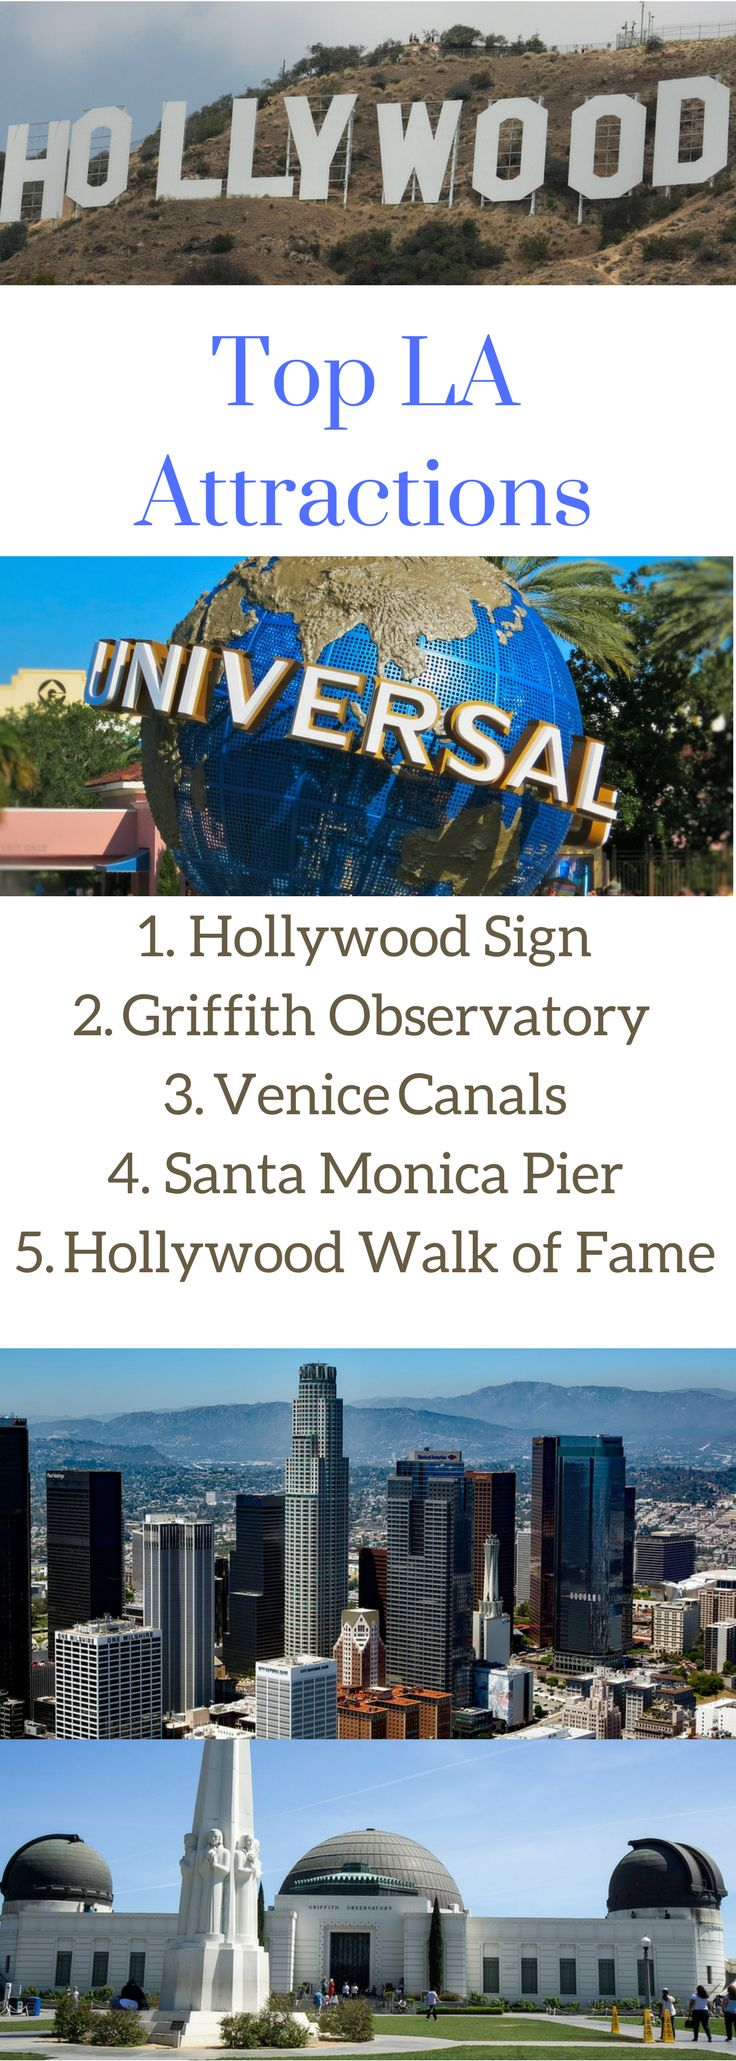 Things to do in Los Angeles   Los Angeles Attractions   Los Angeles Tourism   Best Attractions in LA